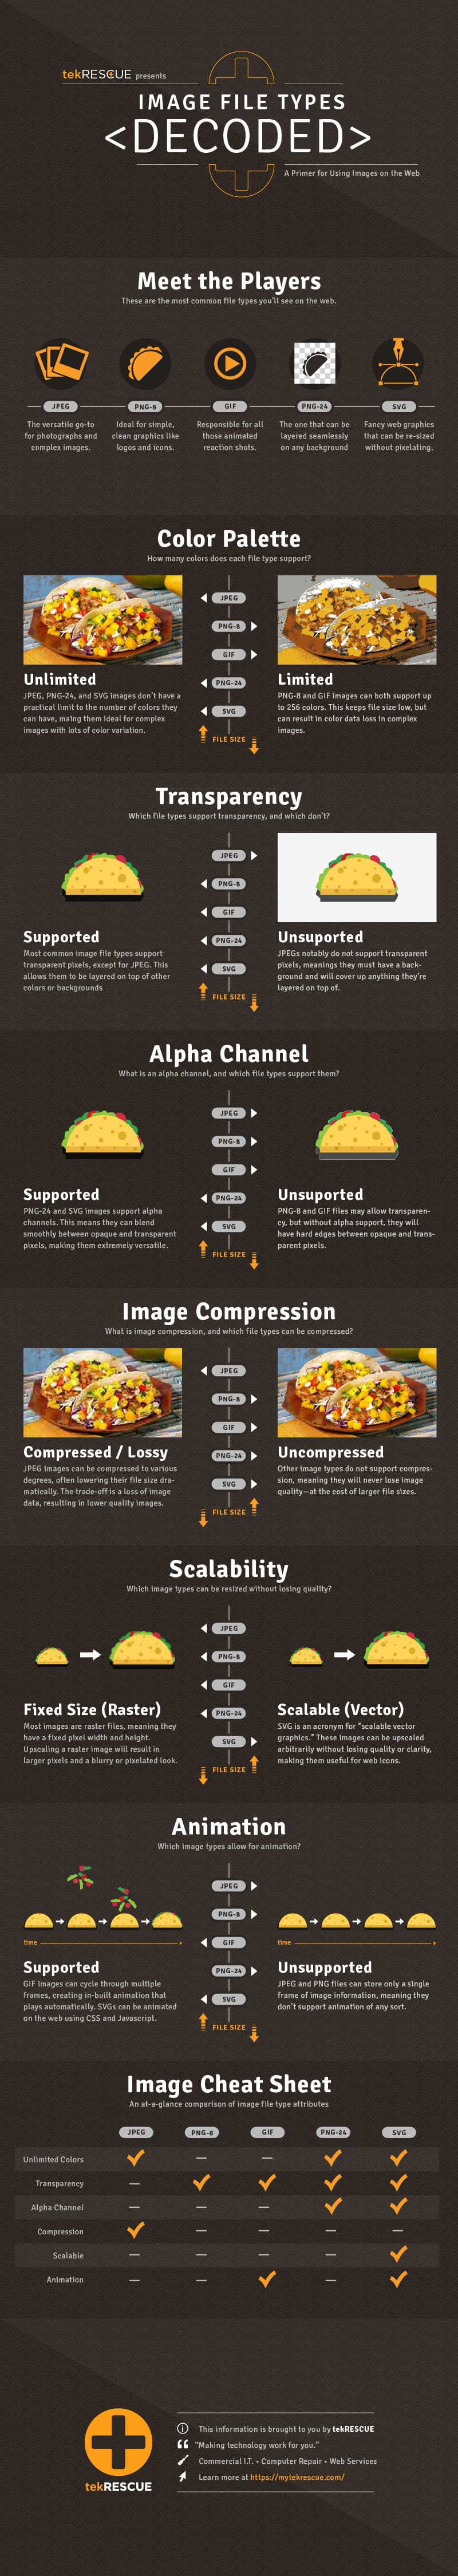 An infographic comparing different image file types. Read below for a text-based version of the info.